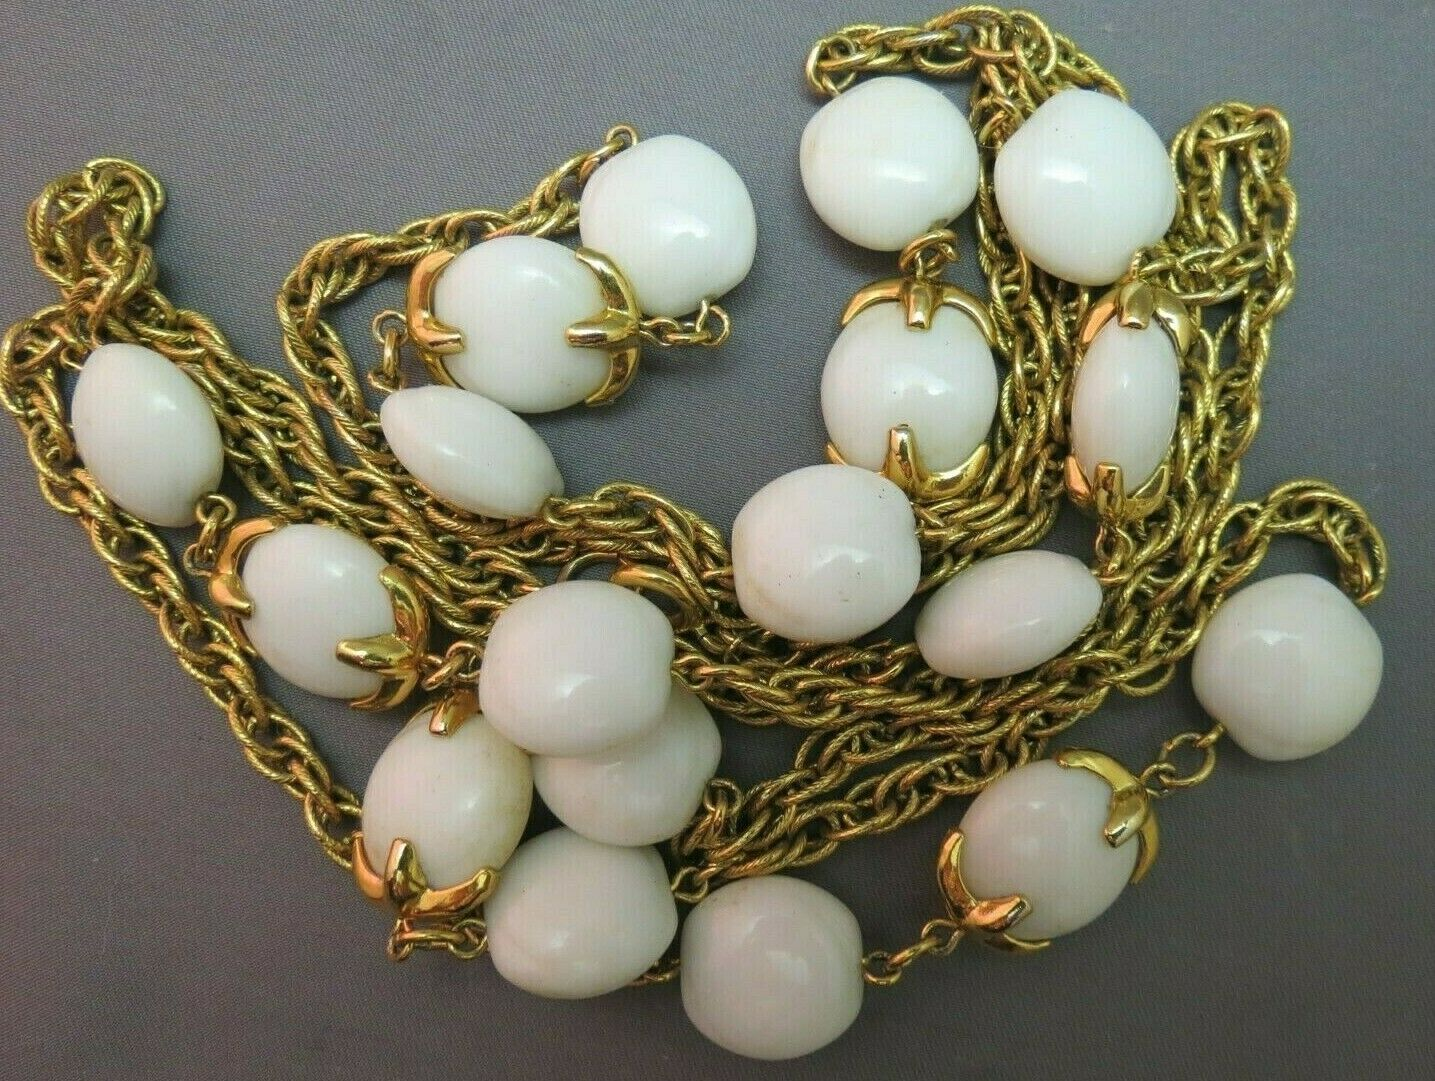 """VTG Crown Trifari Long Necklace Chain Gold Plated Glass Beads Couture 54"""" Long image 6"""